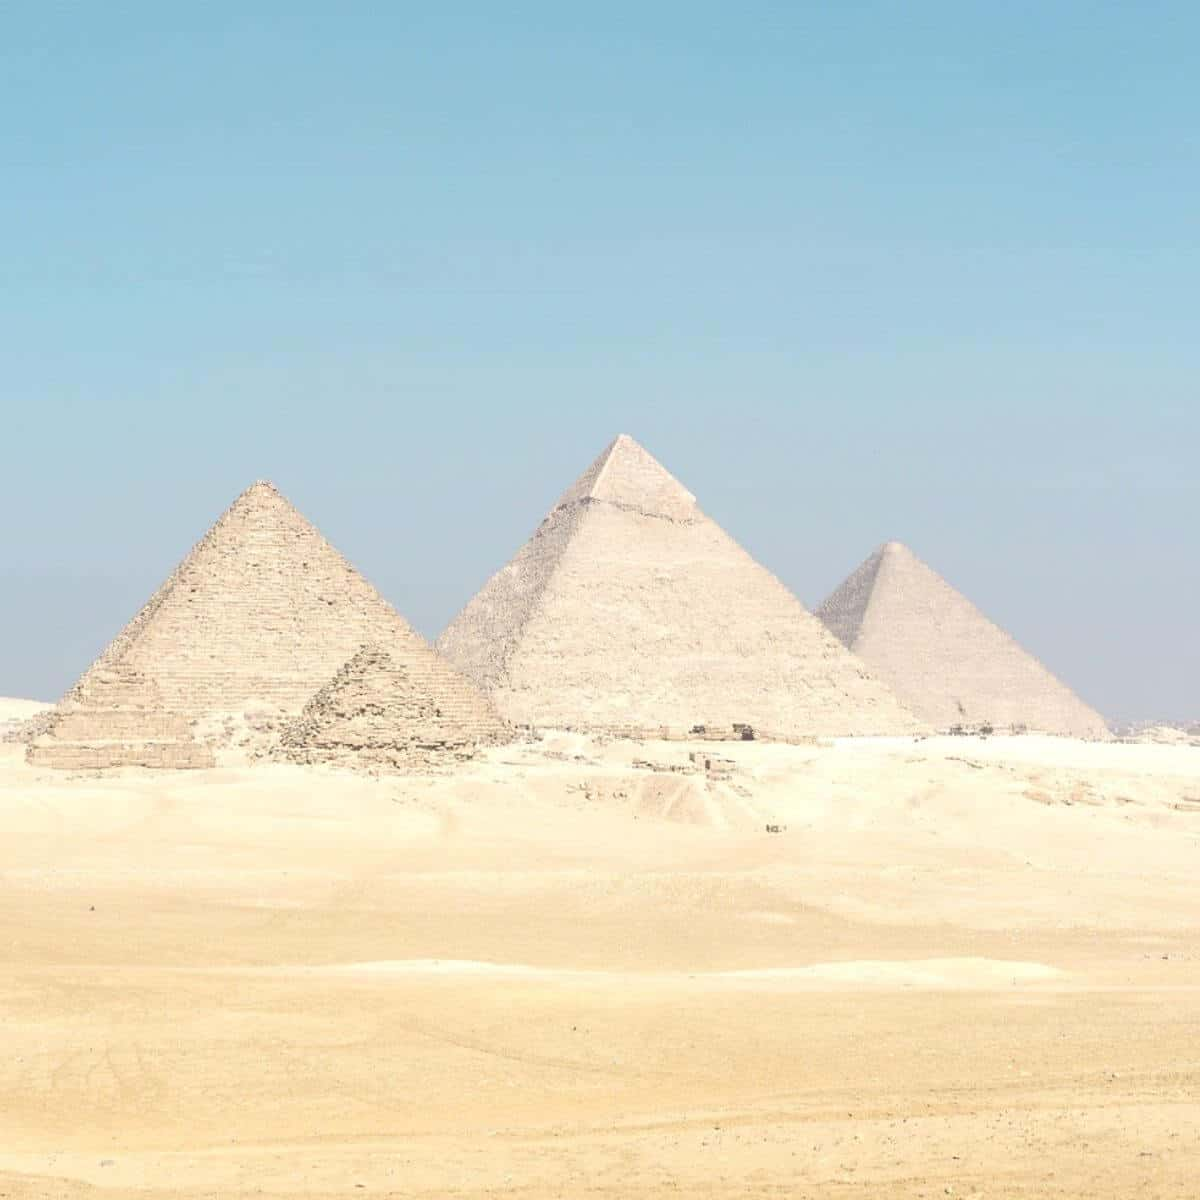 Pyramids of Giza during the day.